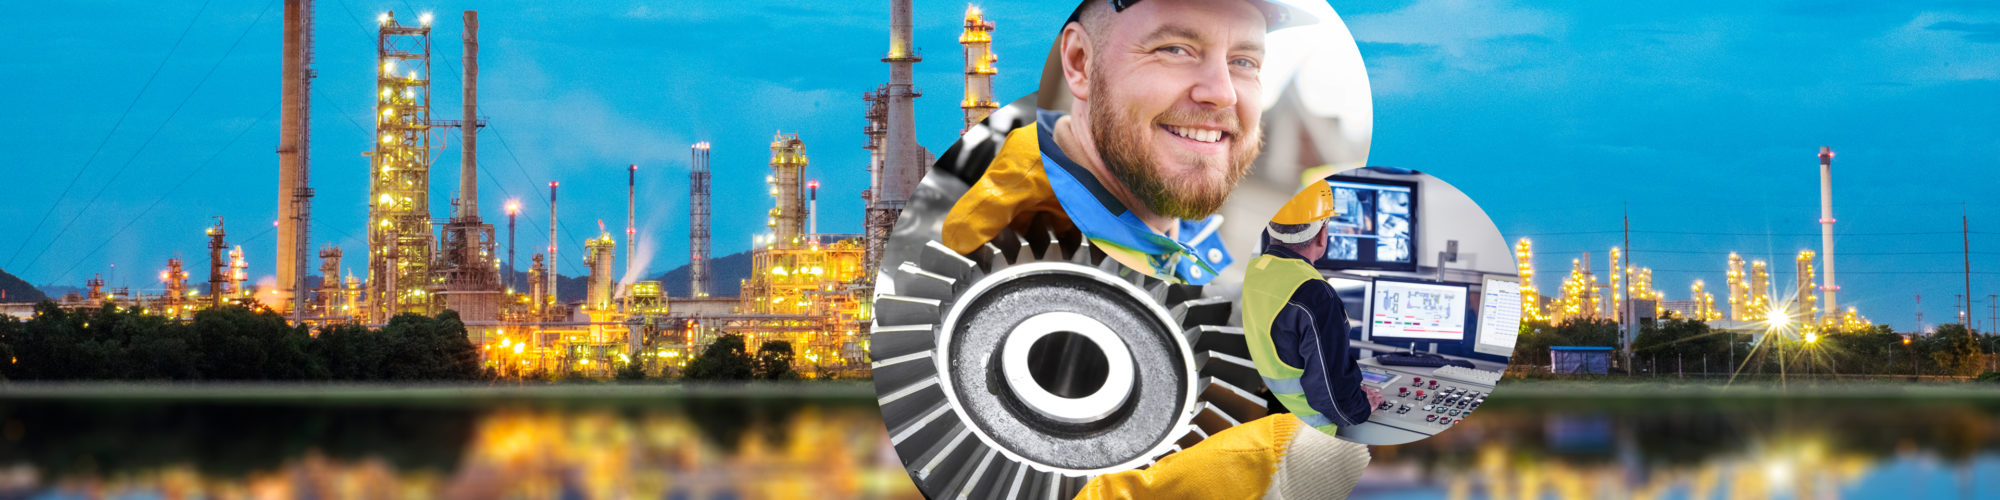 Image of a man with a hard hat, next to it a gear wheel and a man in safety vest in front of computer monitors, in the background a large industrial plant, valantic industry overview